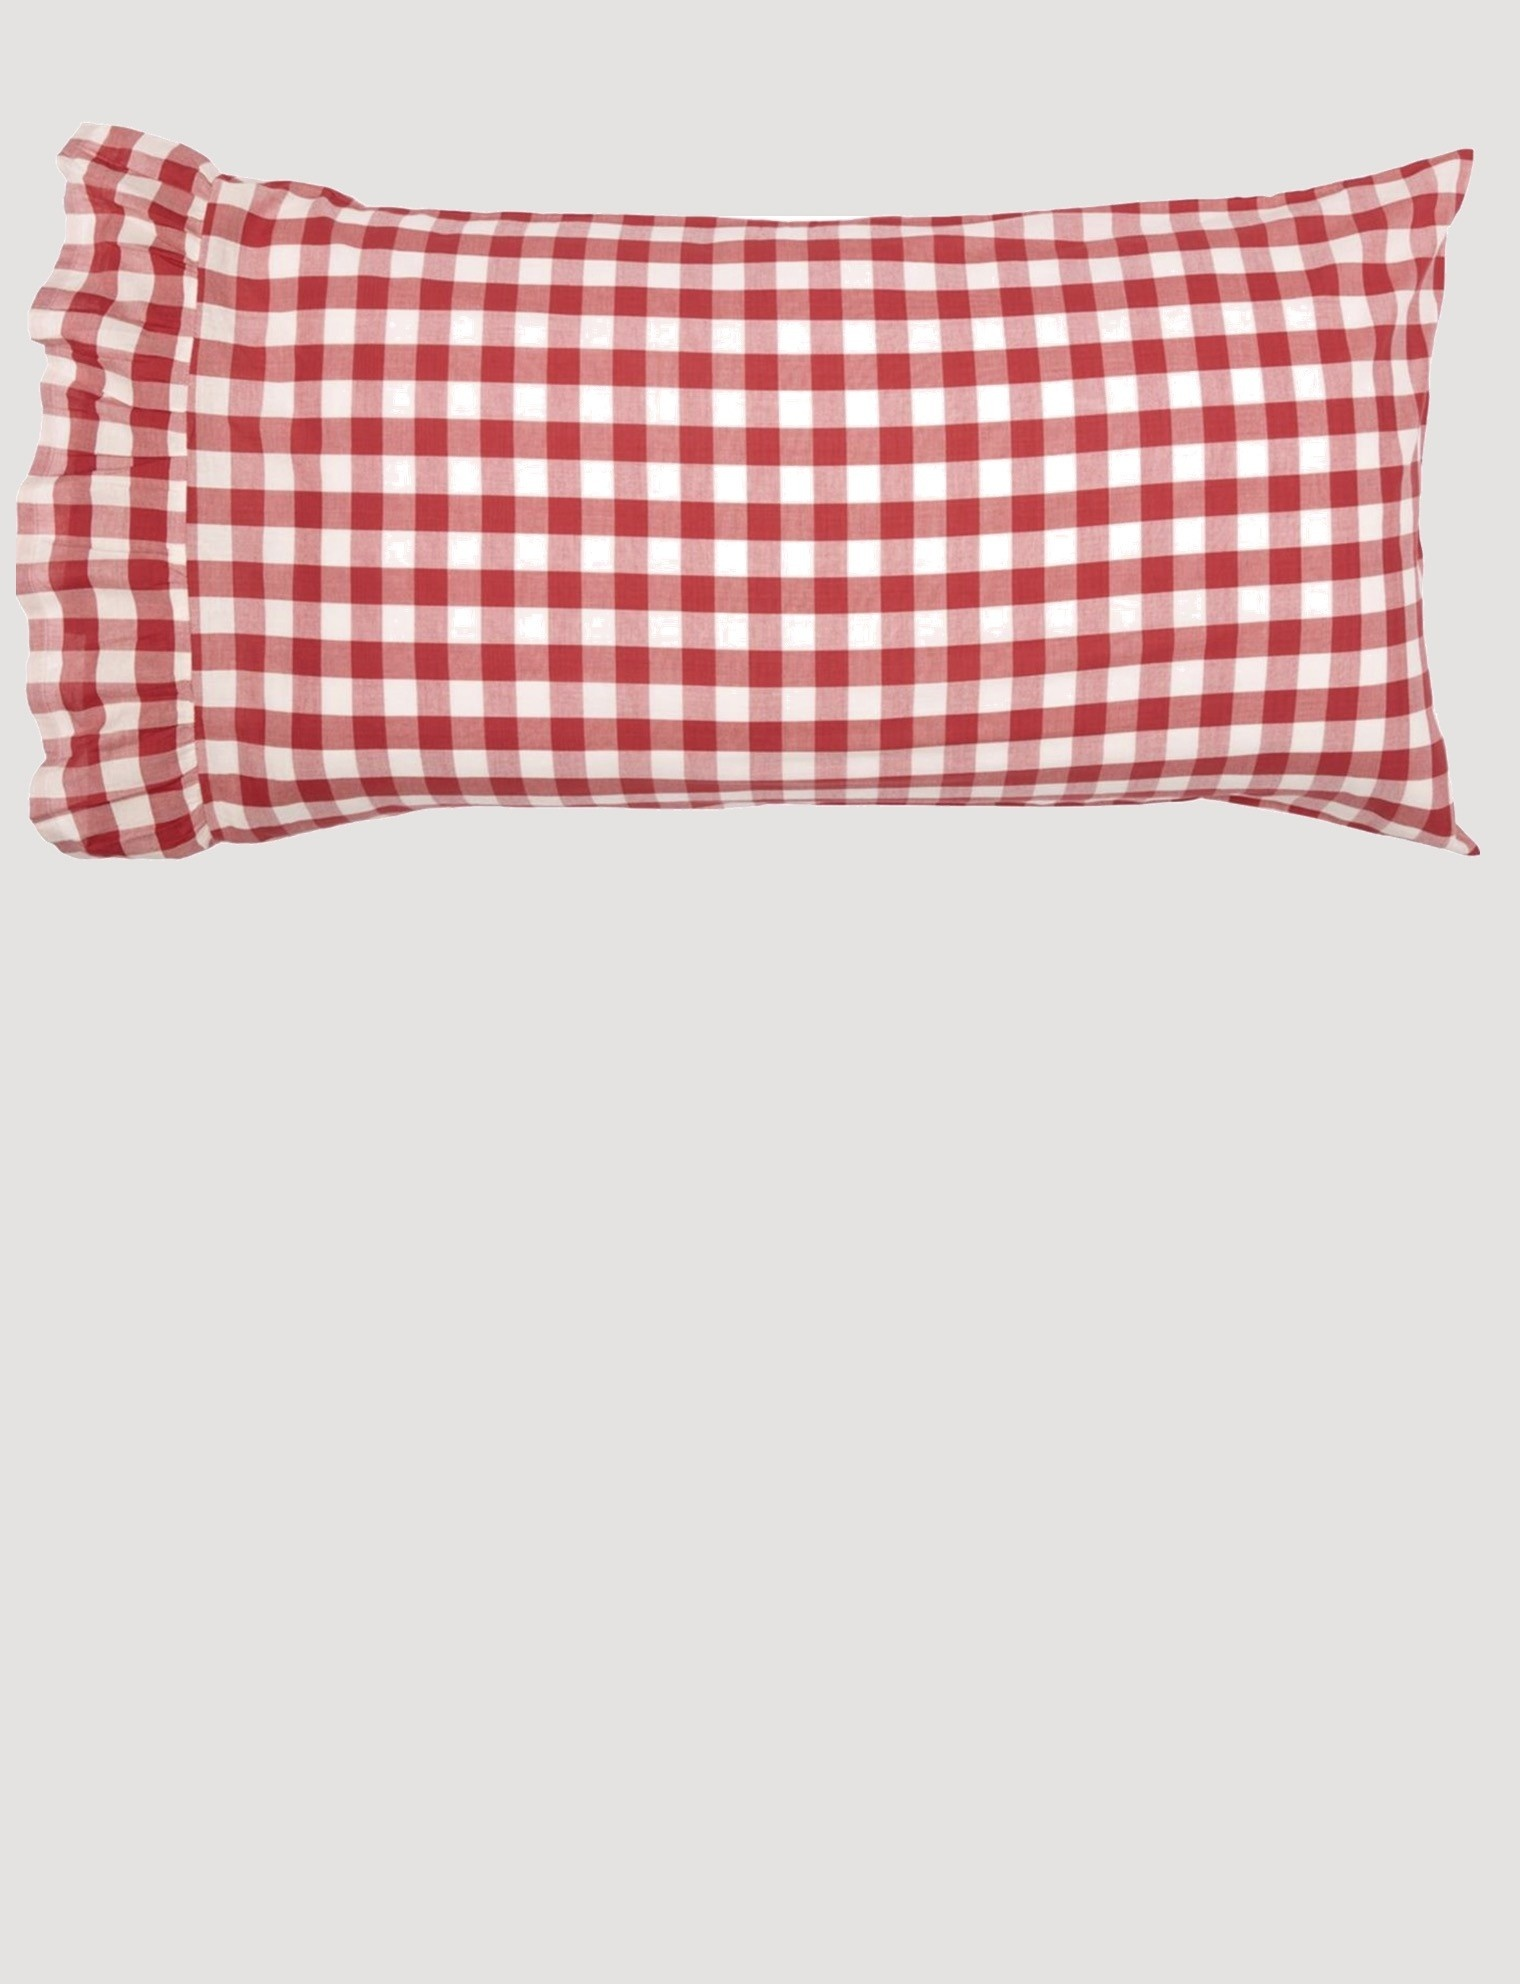 VHC Brands Annie Buffalo Red Check Pillow Cases Set of 2